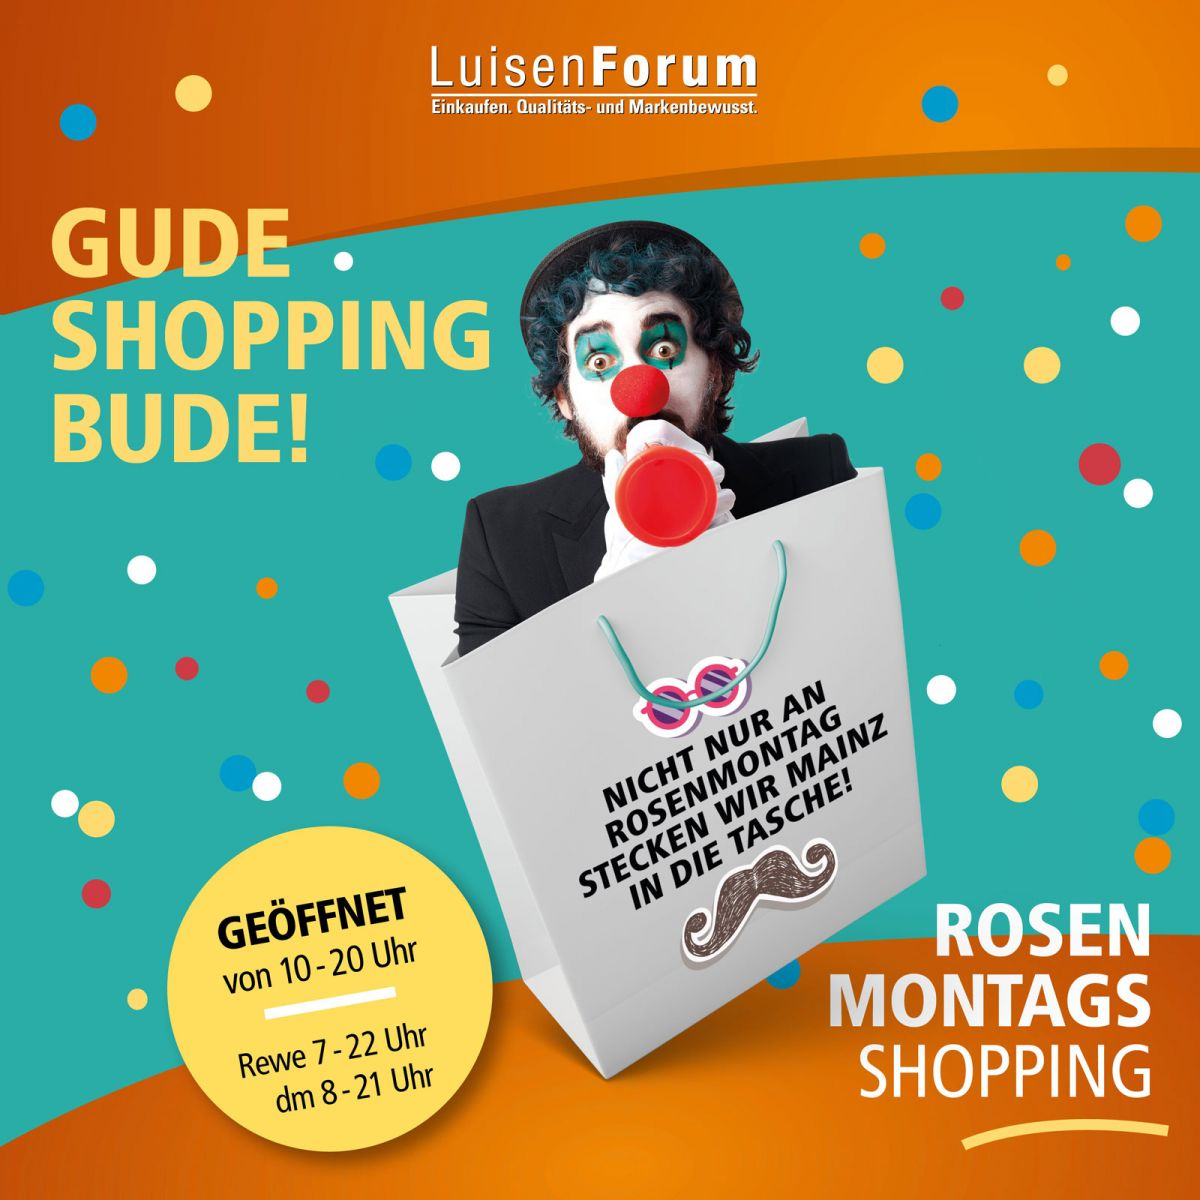 Rosenmontags Shopping im LuisenForum